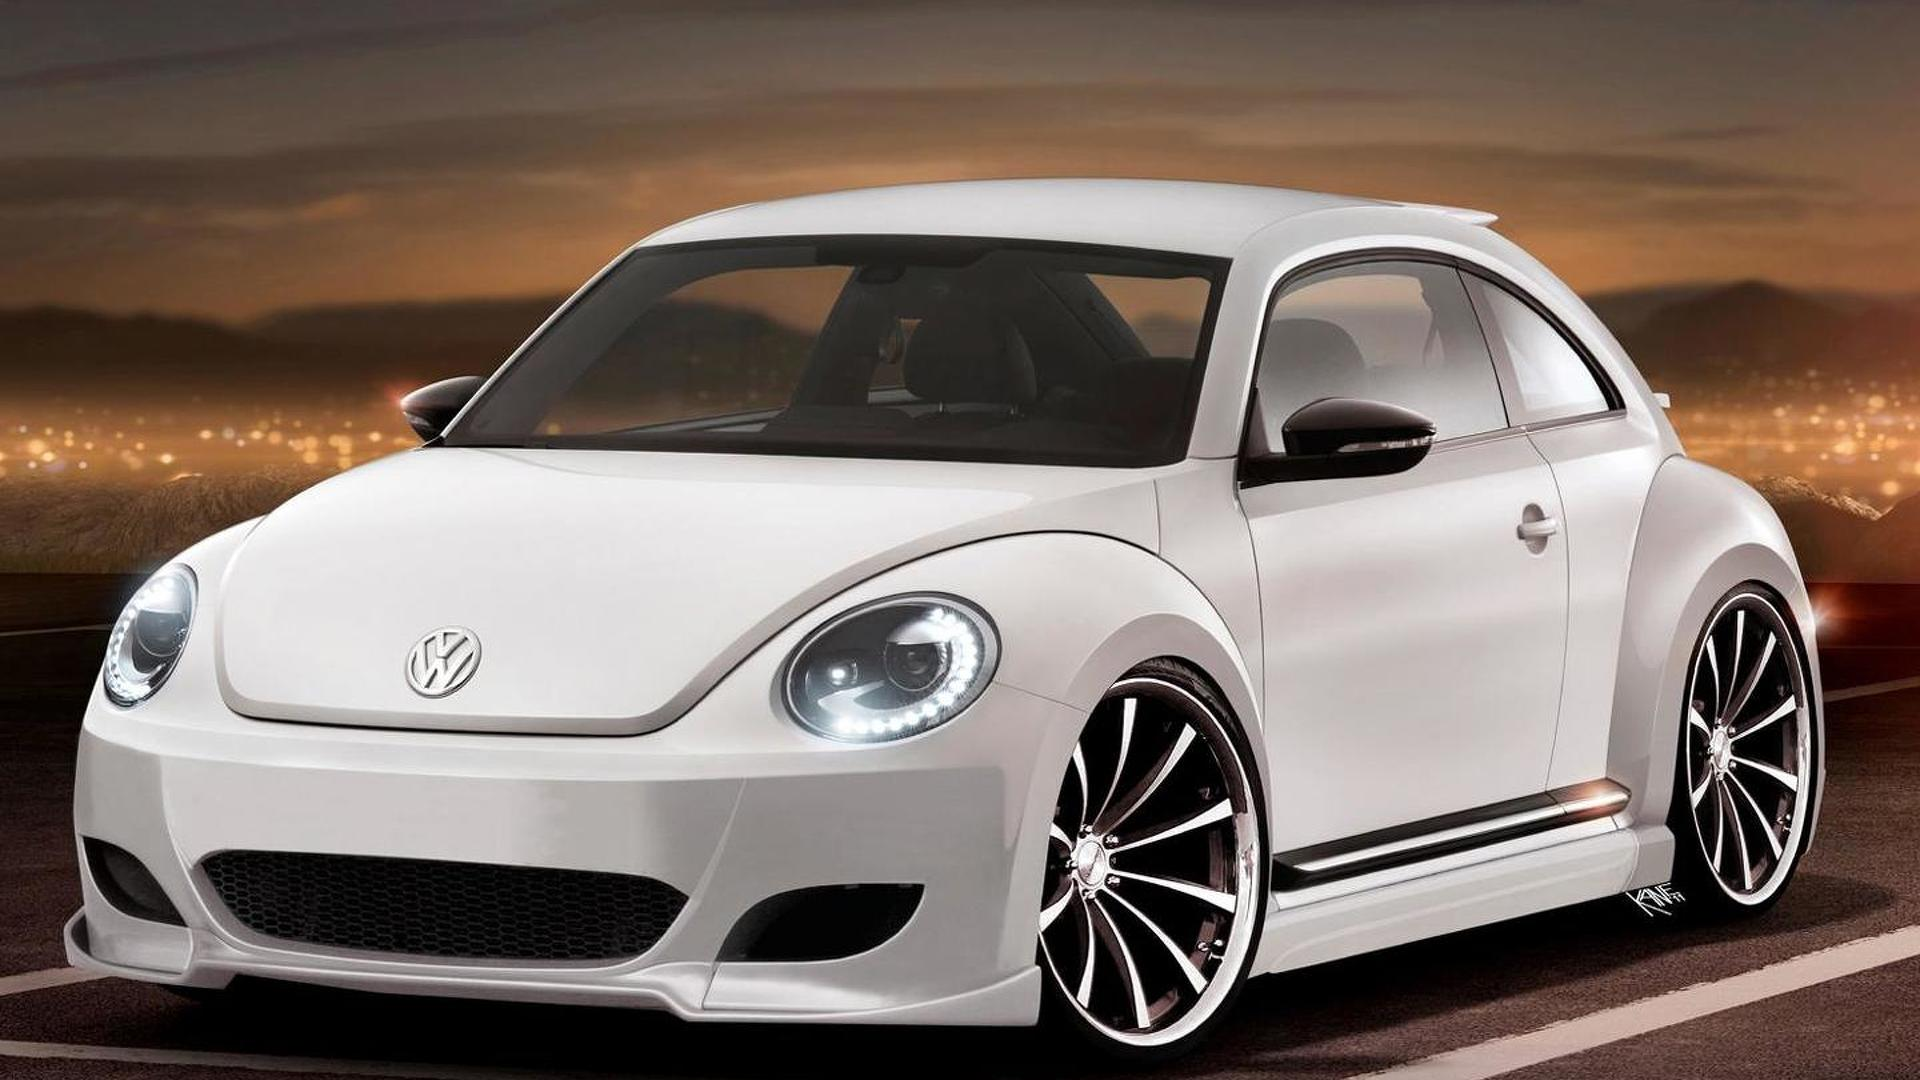 VW Beetle R coming with 270 HP - report